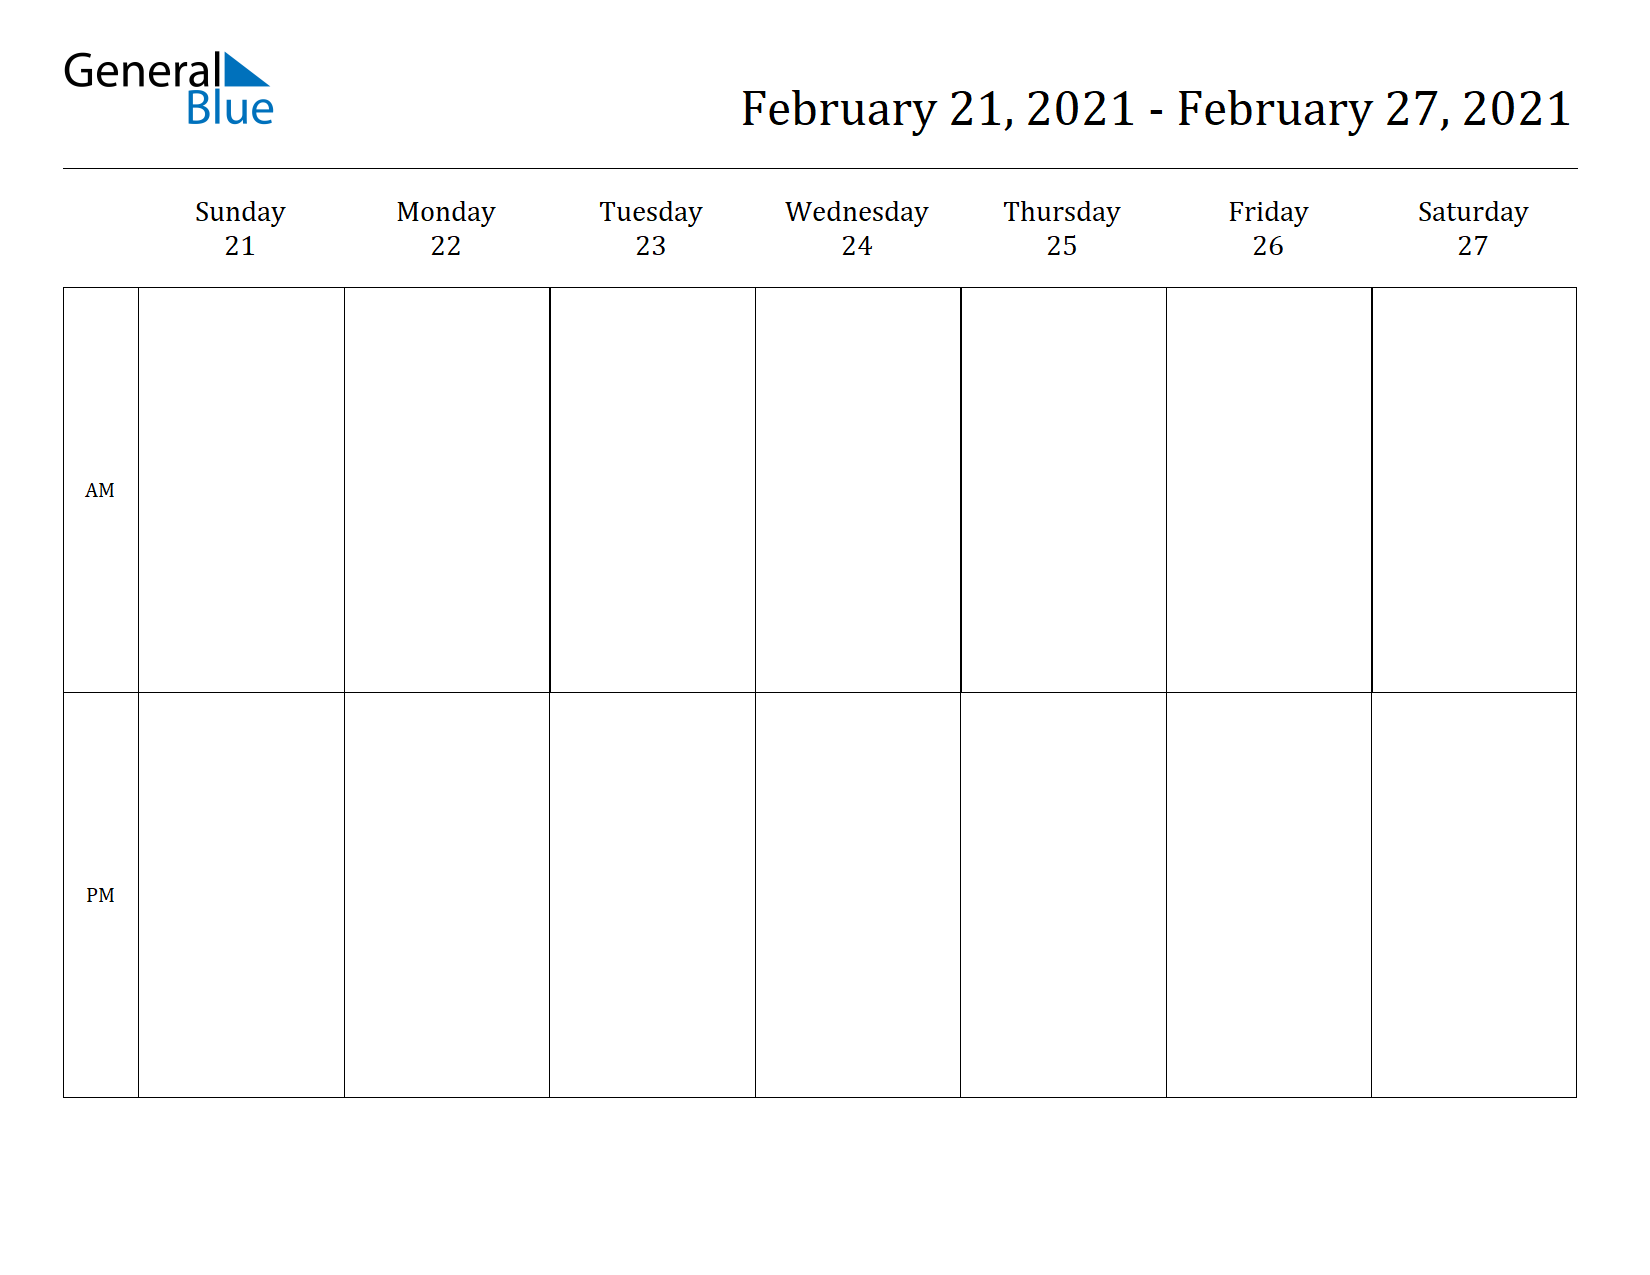 Weekly Calendar for Feb 21, 2021 to Feb 27, 2021